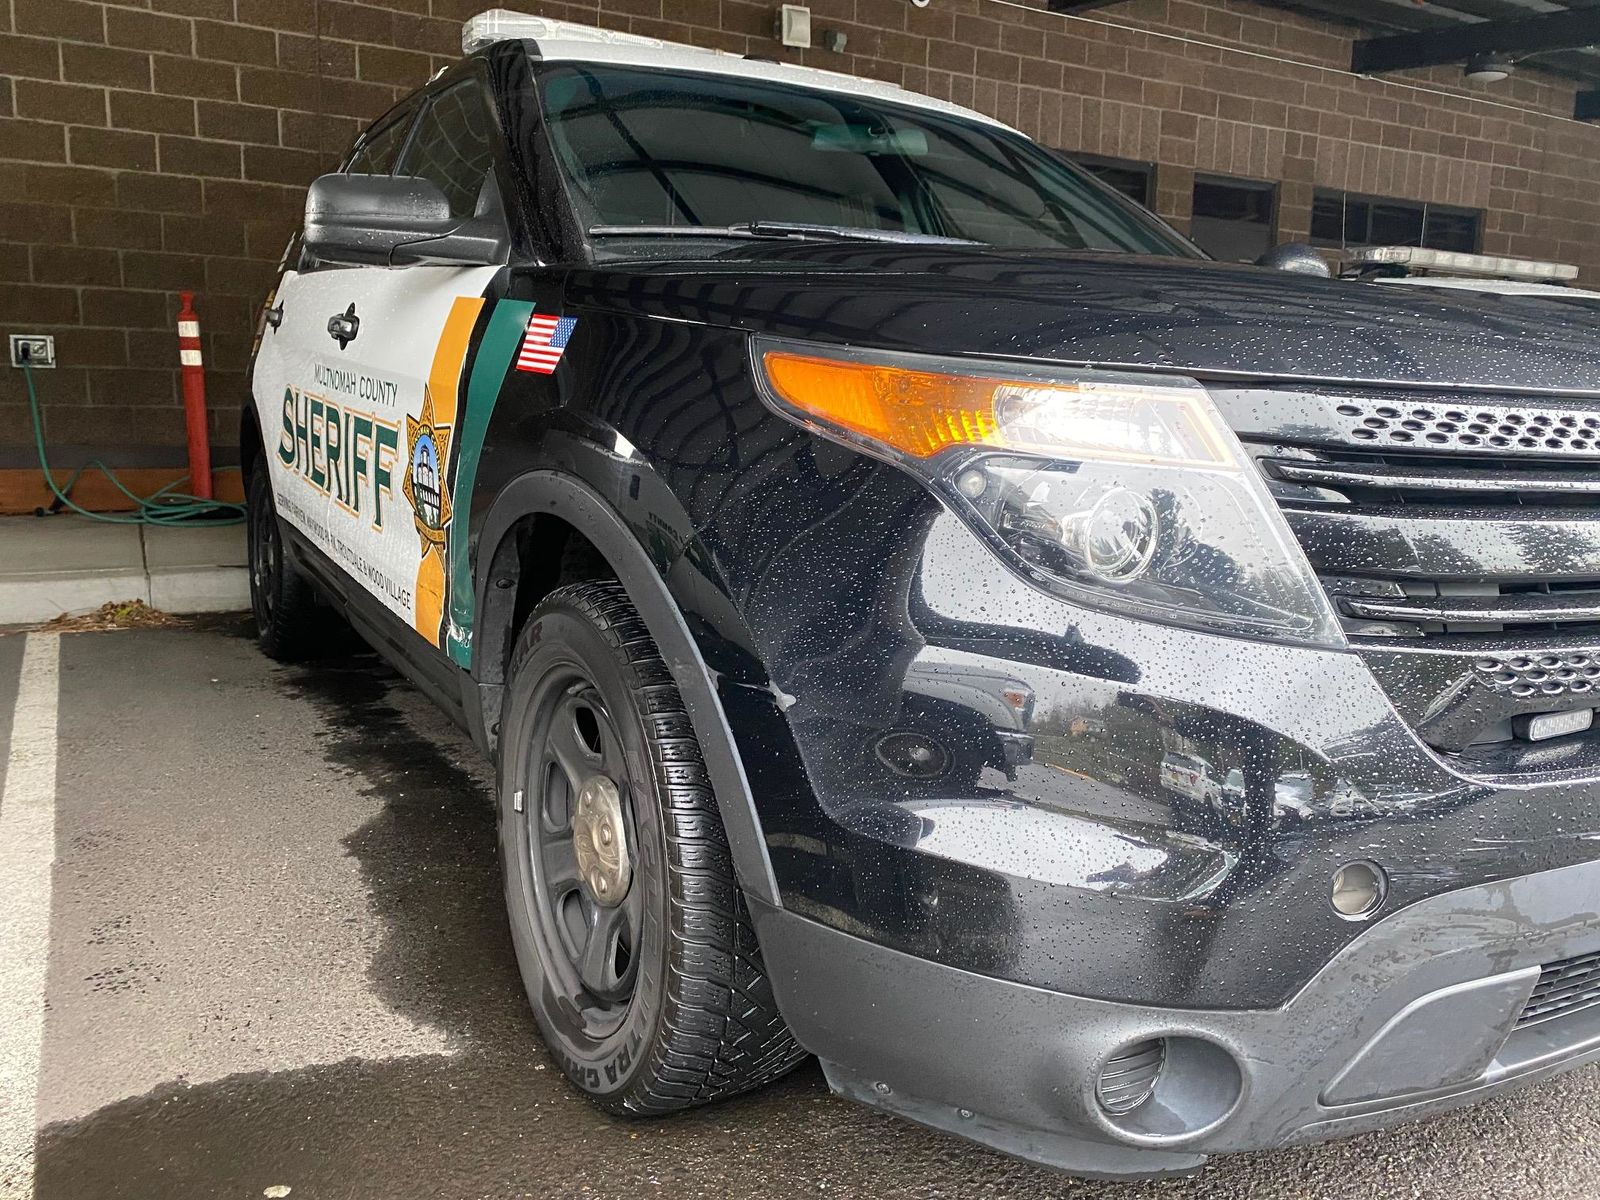 Deputies took Michael Freda into custody on Dec. 7, 2019 after they say he led law enforcement on a pursuit and rammed two Multnomah County Sheriff's Office patrol cars. Photo courtesy Multnomah County Sheriff's Office